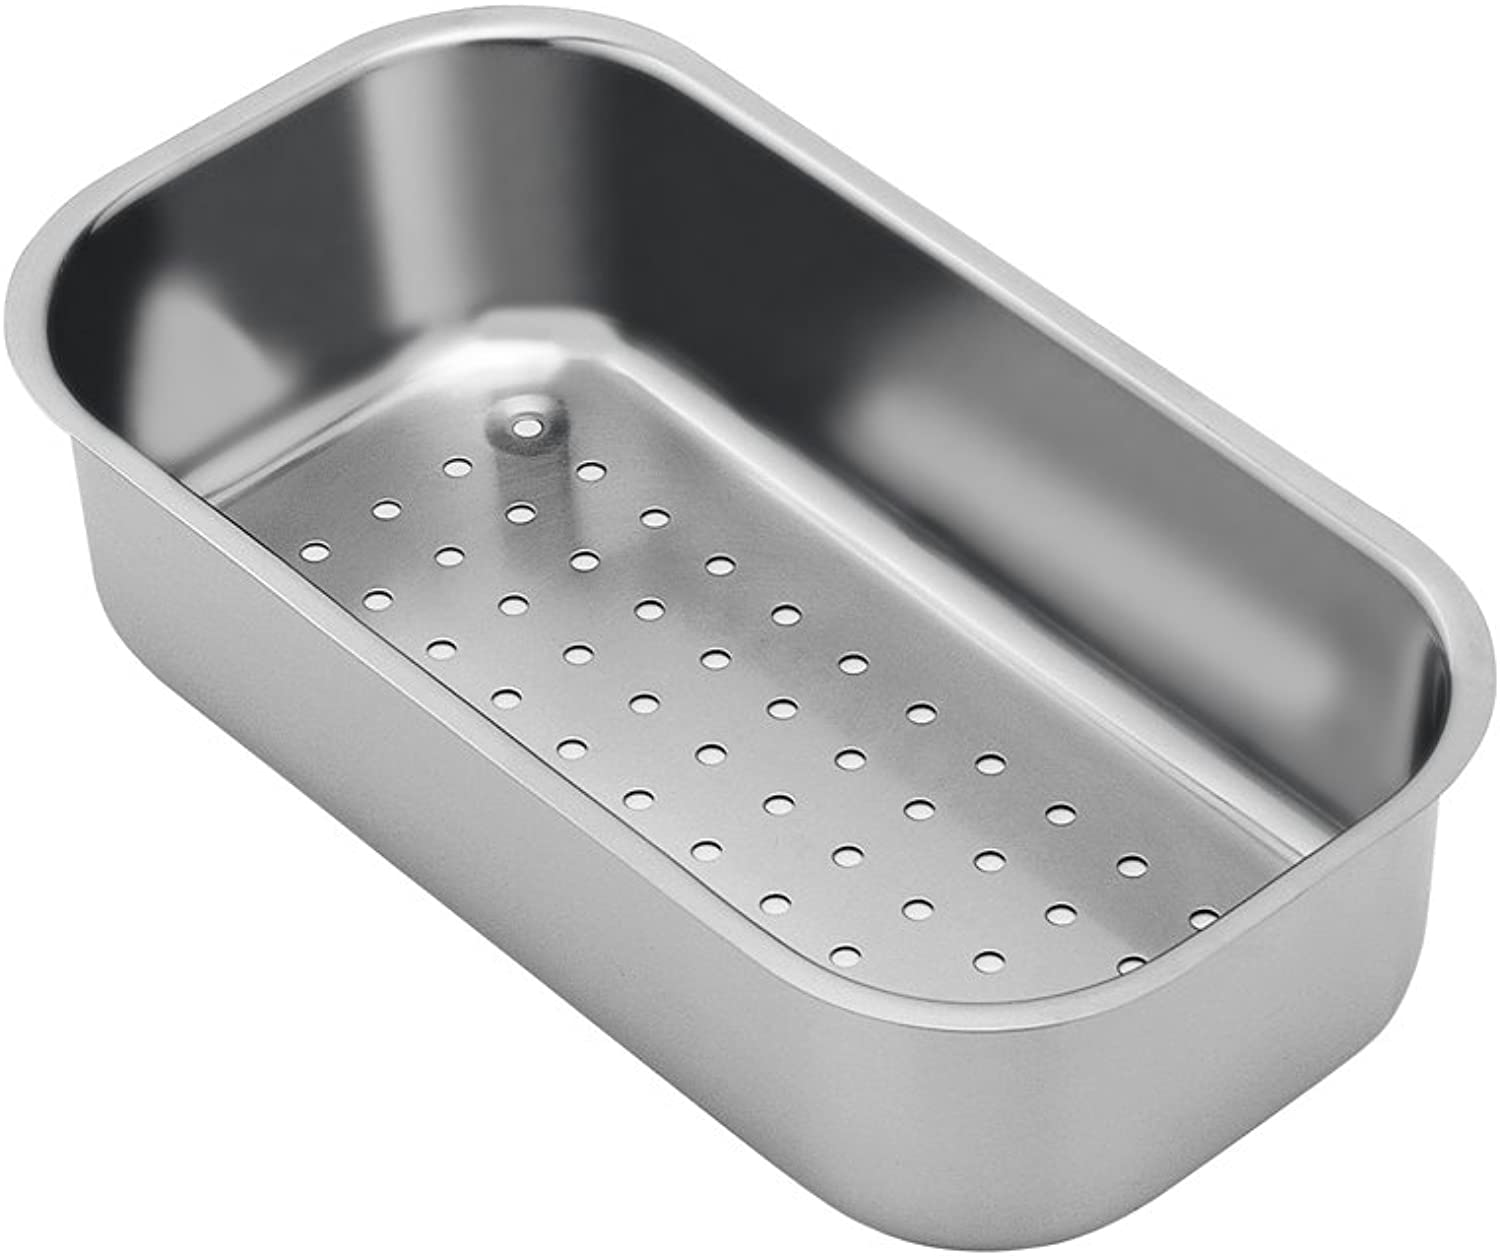 Waste Bowl Liner Stainless Steel for Reiber Marilyn 150 Sink